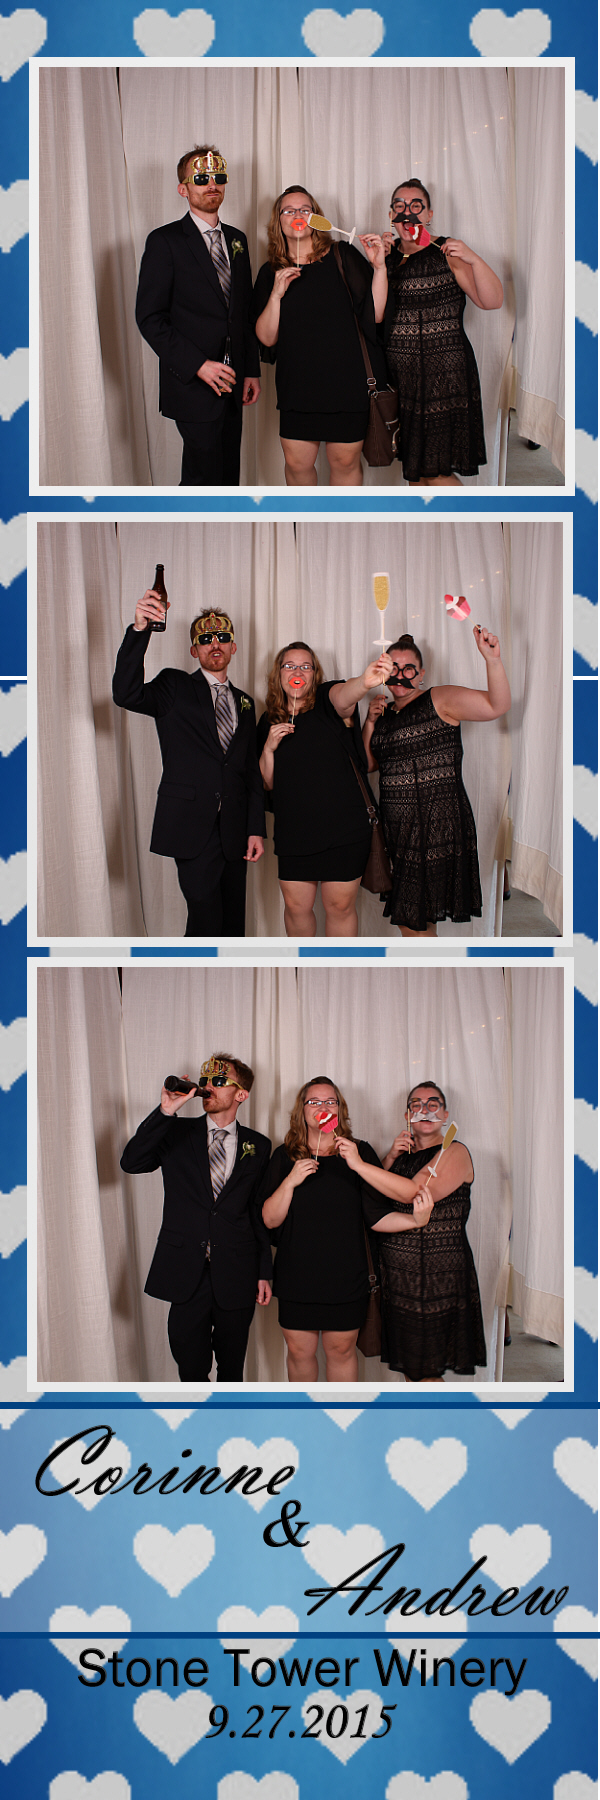 Guest House Events Photo Booth C&A (18).jpg